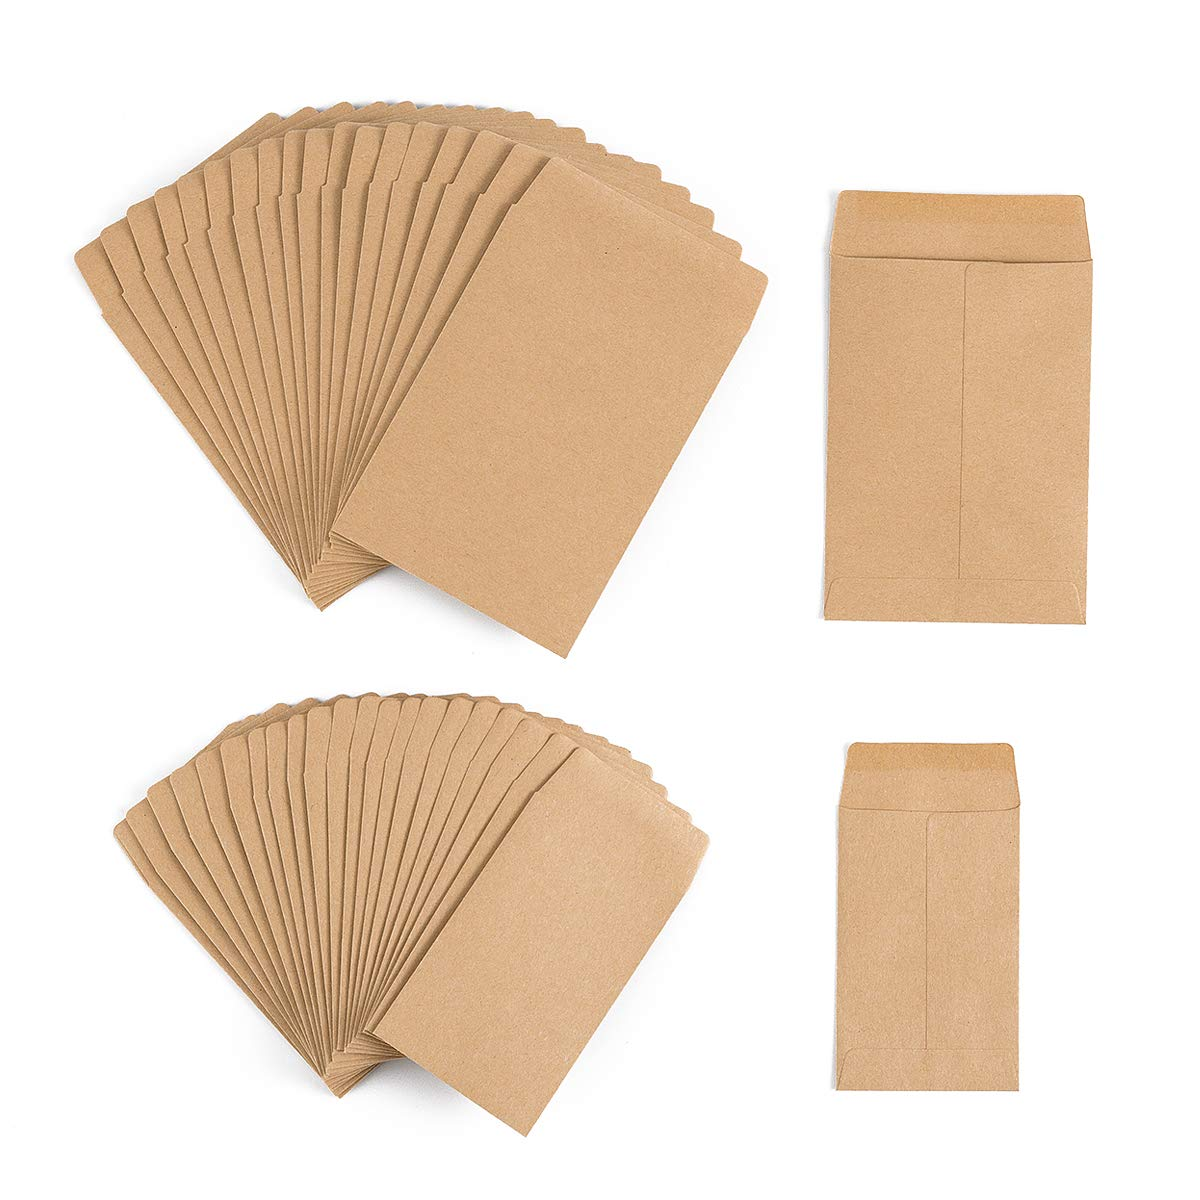 200 Pack Self-Adhesive Small Parts Packets Envelopes Kraft Self Sealing Seed Envelopes Coin Stamps Storage for Home, Garden, Wedding or Office, 2 Size(2.25''×3.5''/3.23''×4.53'')